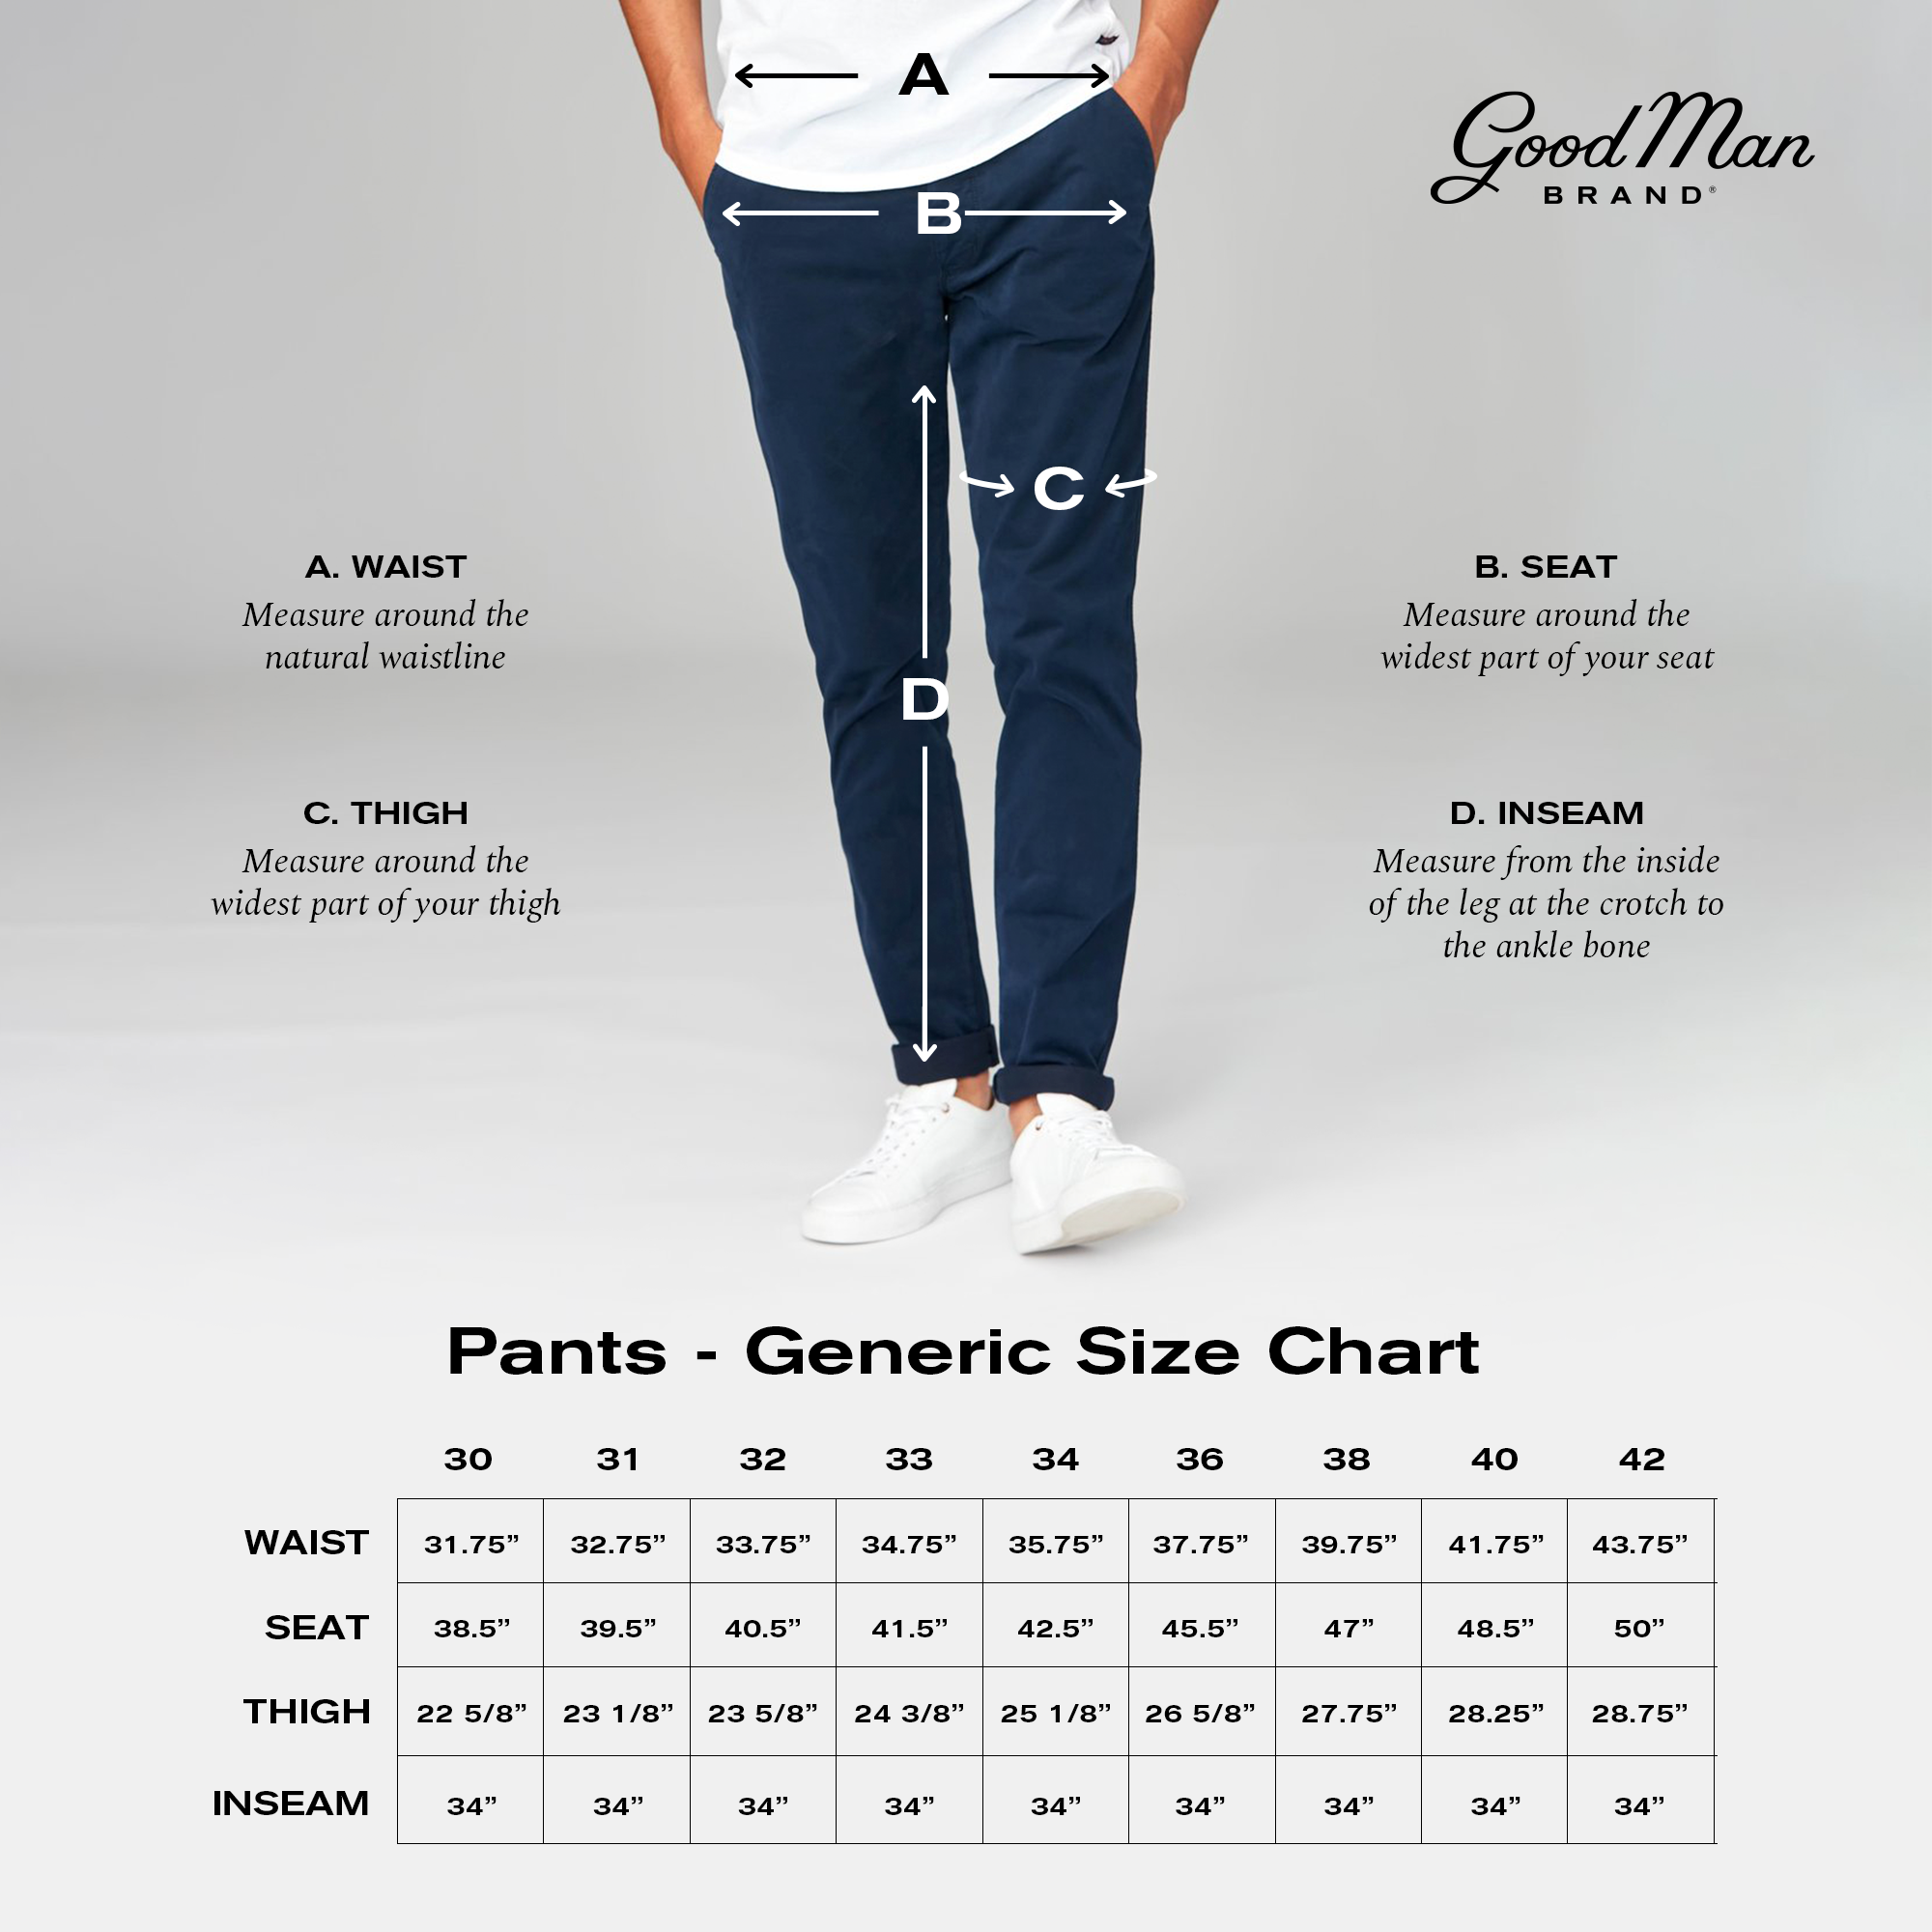 Good Man Brand Fit Guide - Pants Numeric